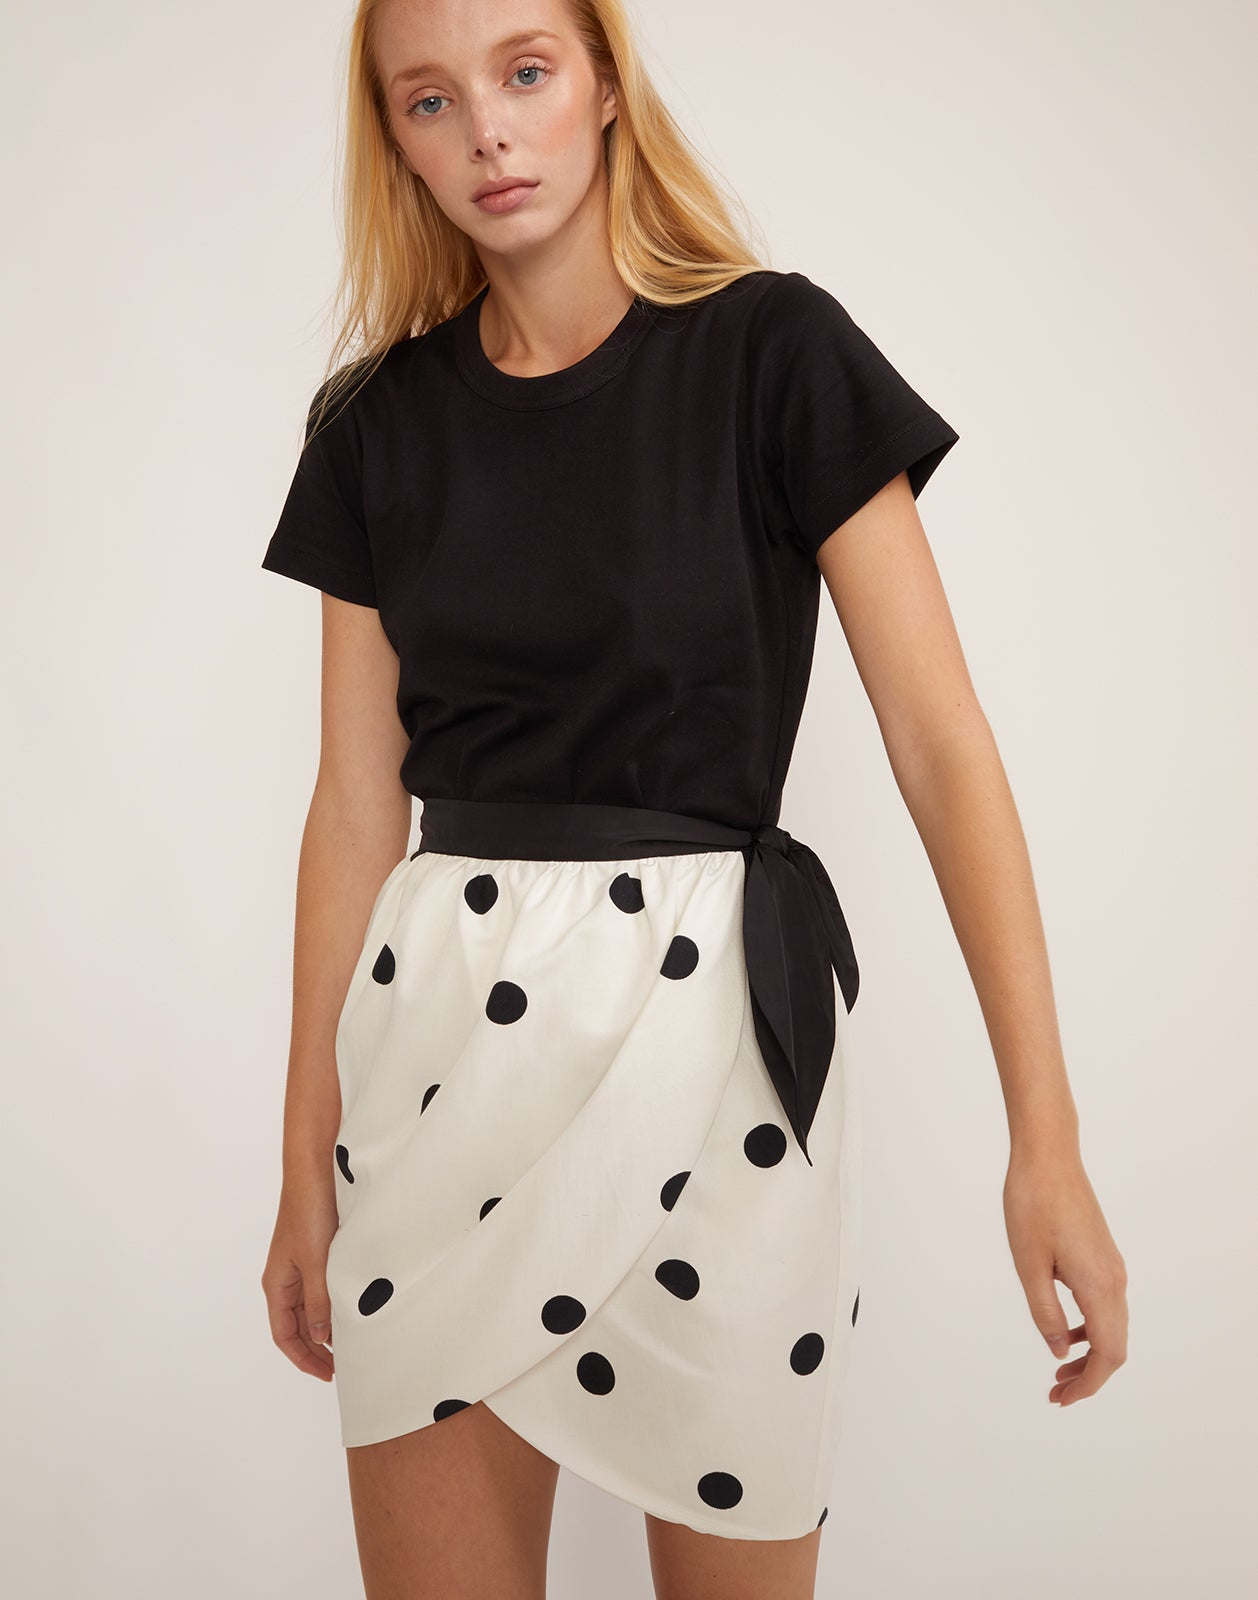 Front view of model in the black and white polka dot print Emery skirt.